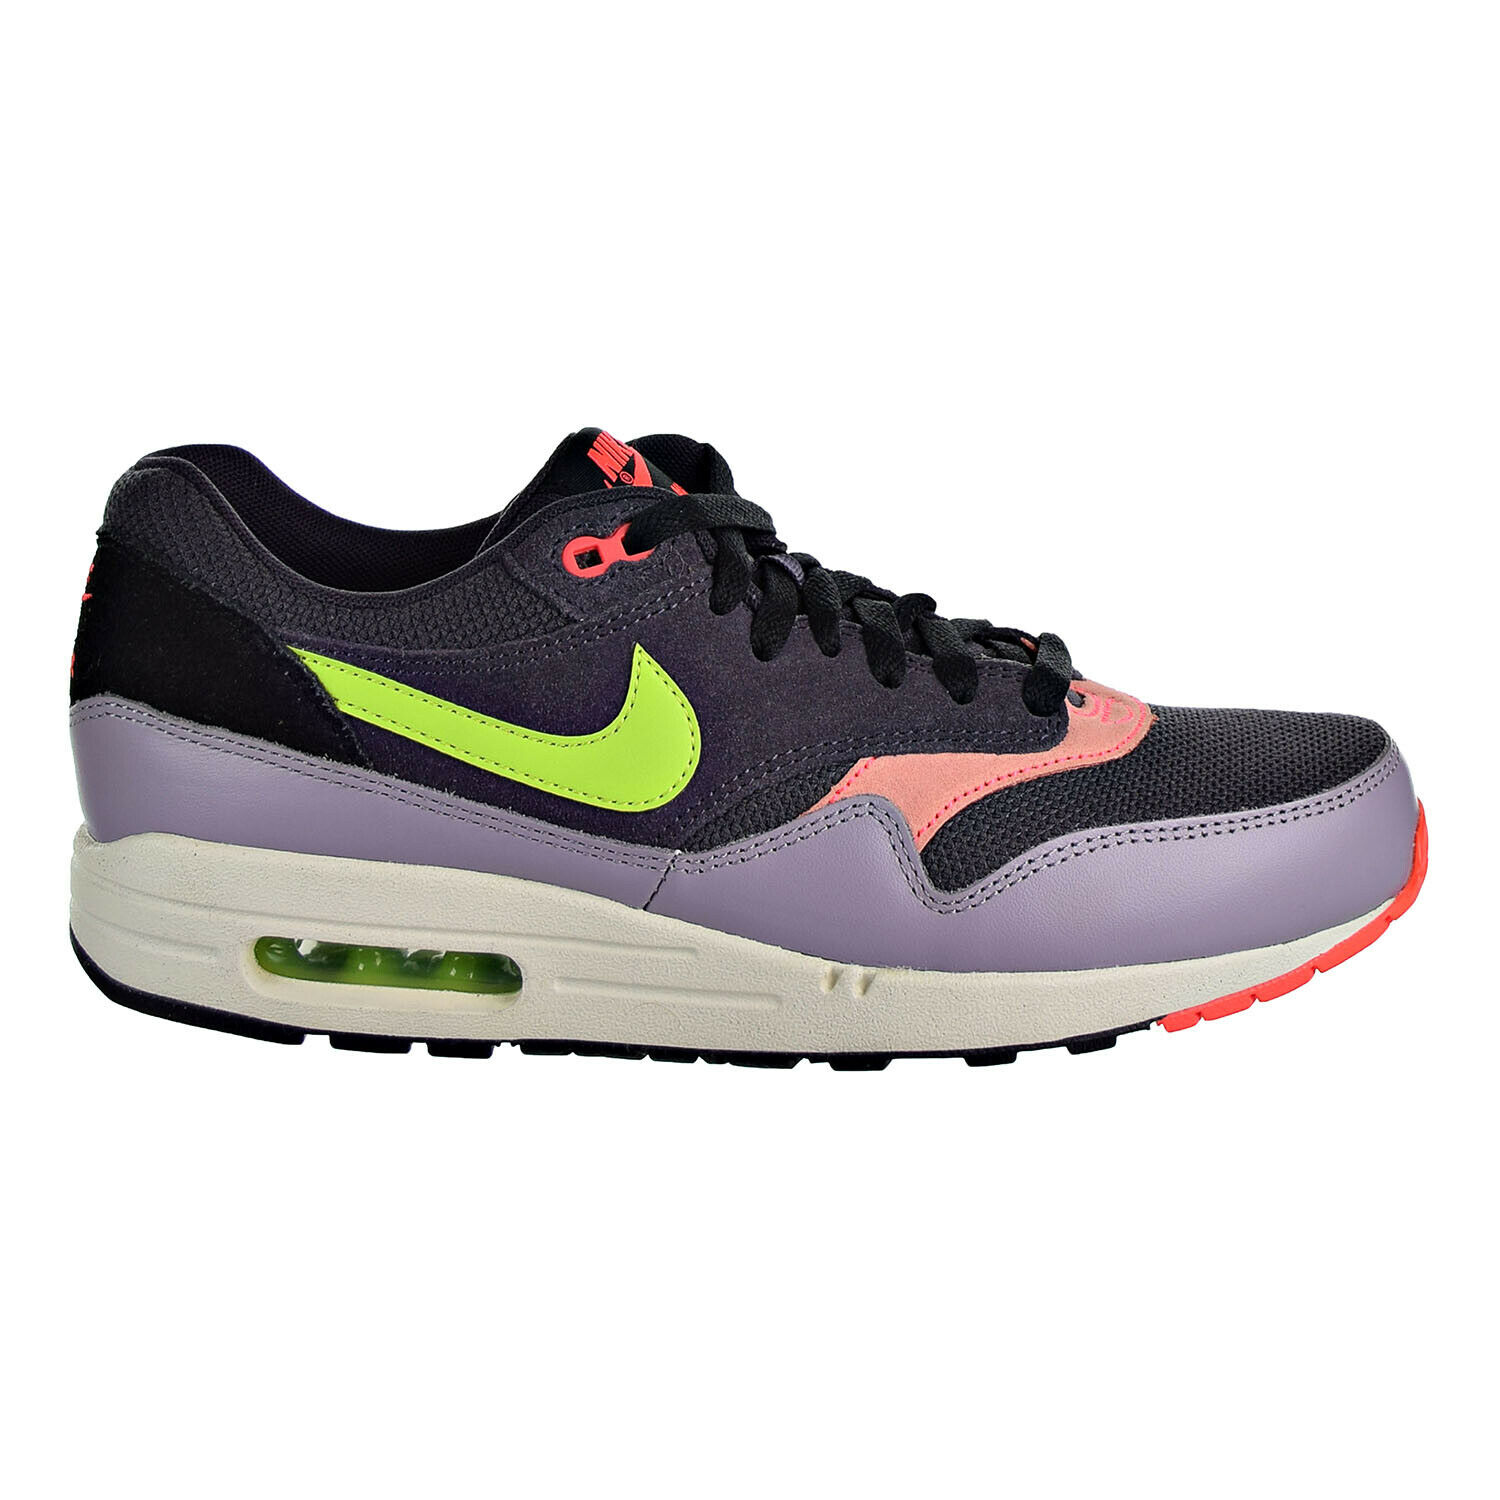 Nike Air Max 1 Essential Men's Sneaker shoes Cave Purple Green 537383-500